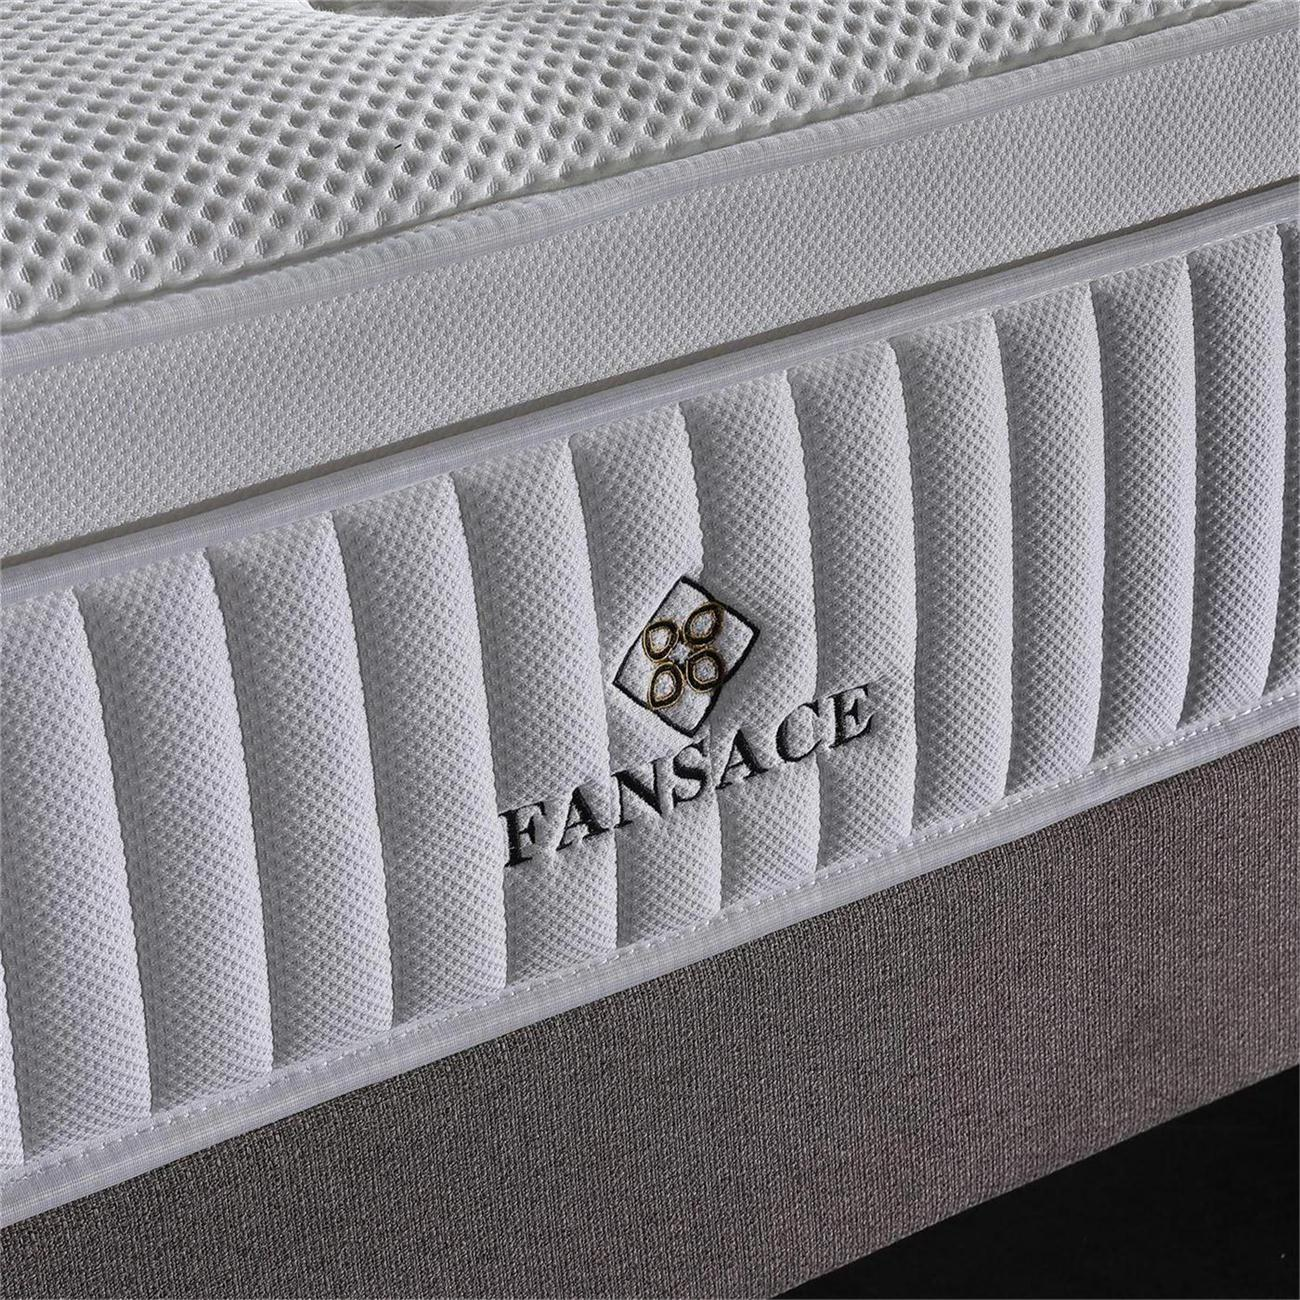 JLH special roll up mattress comfortable Series with elasticity-1